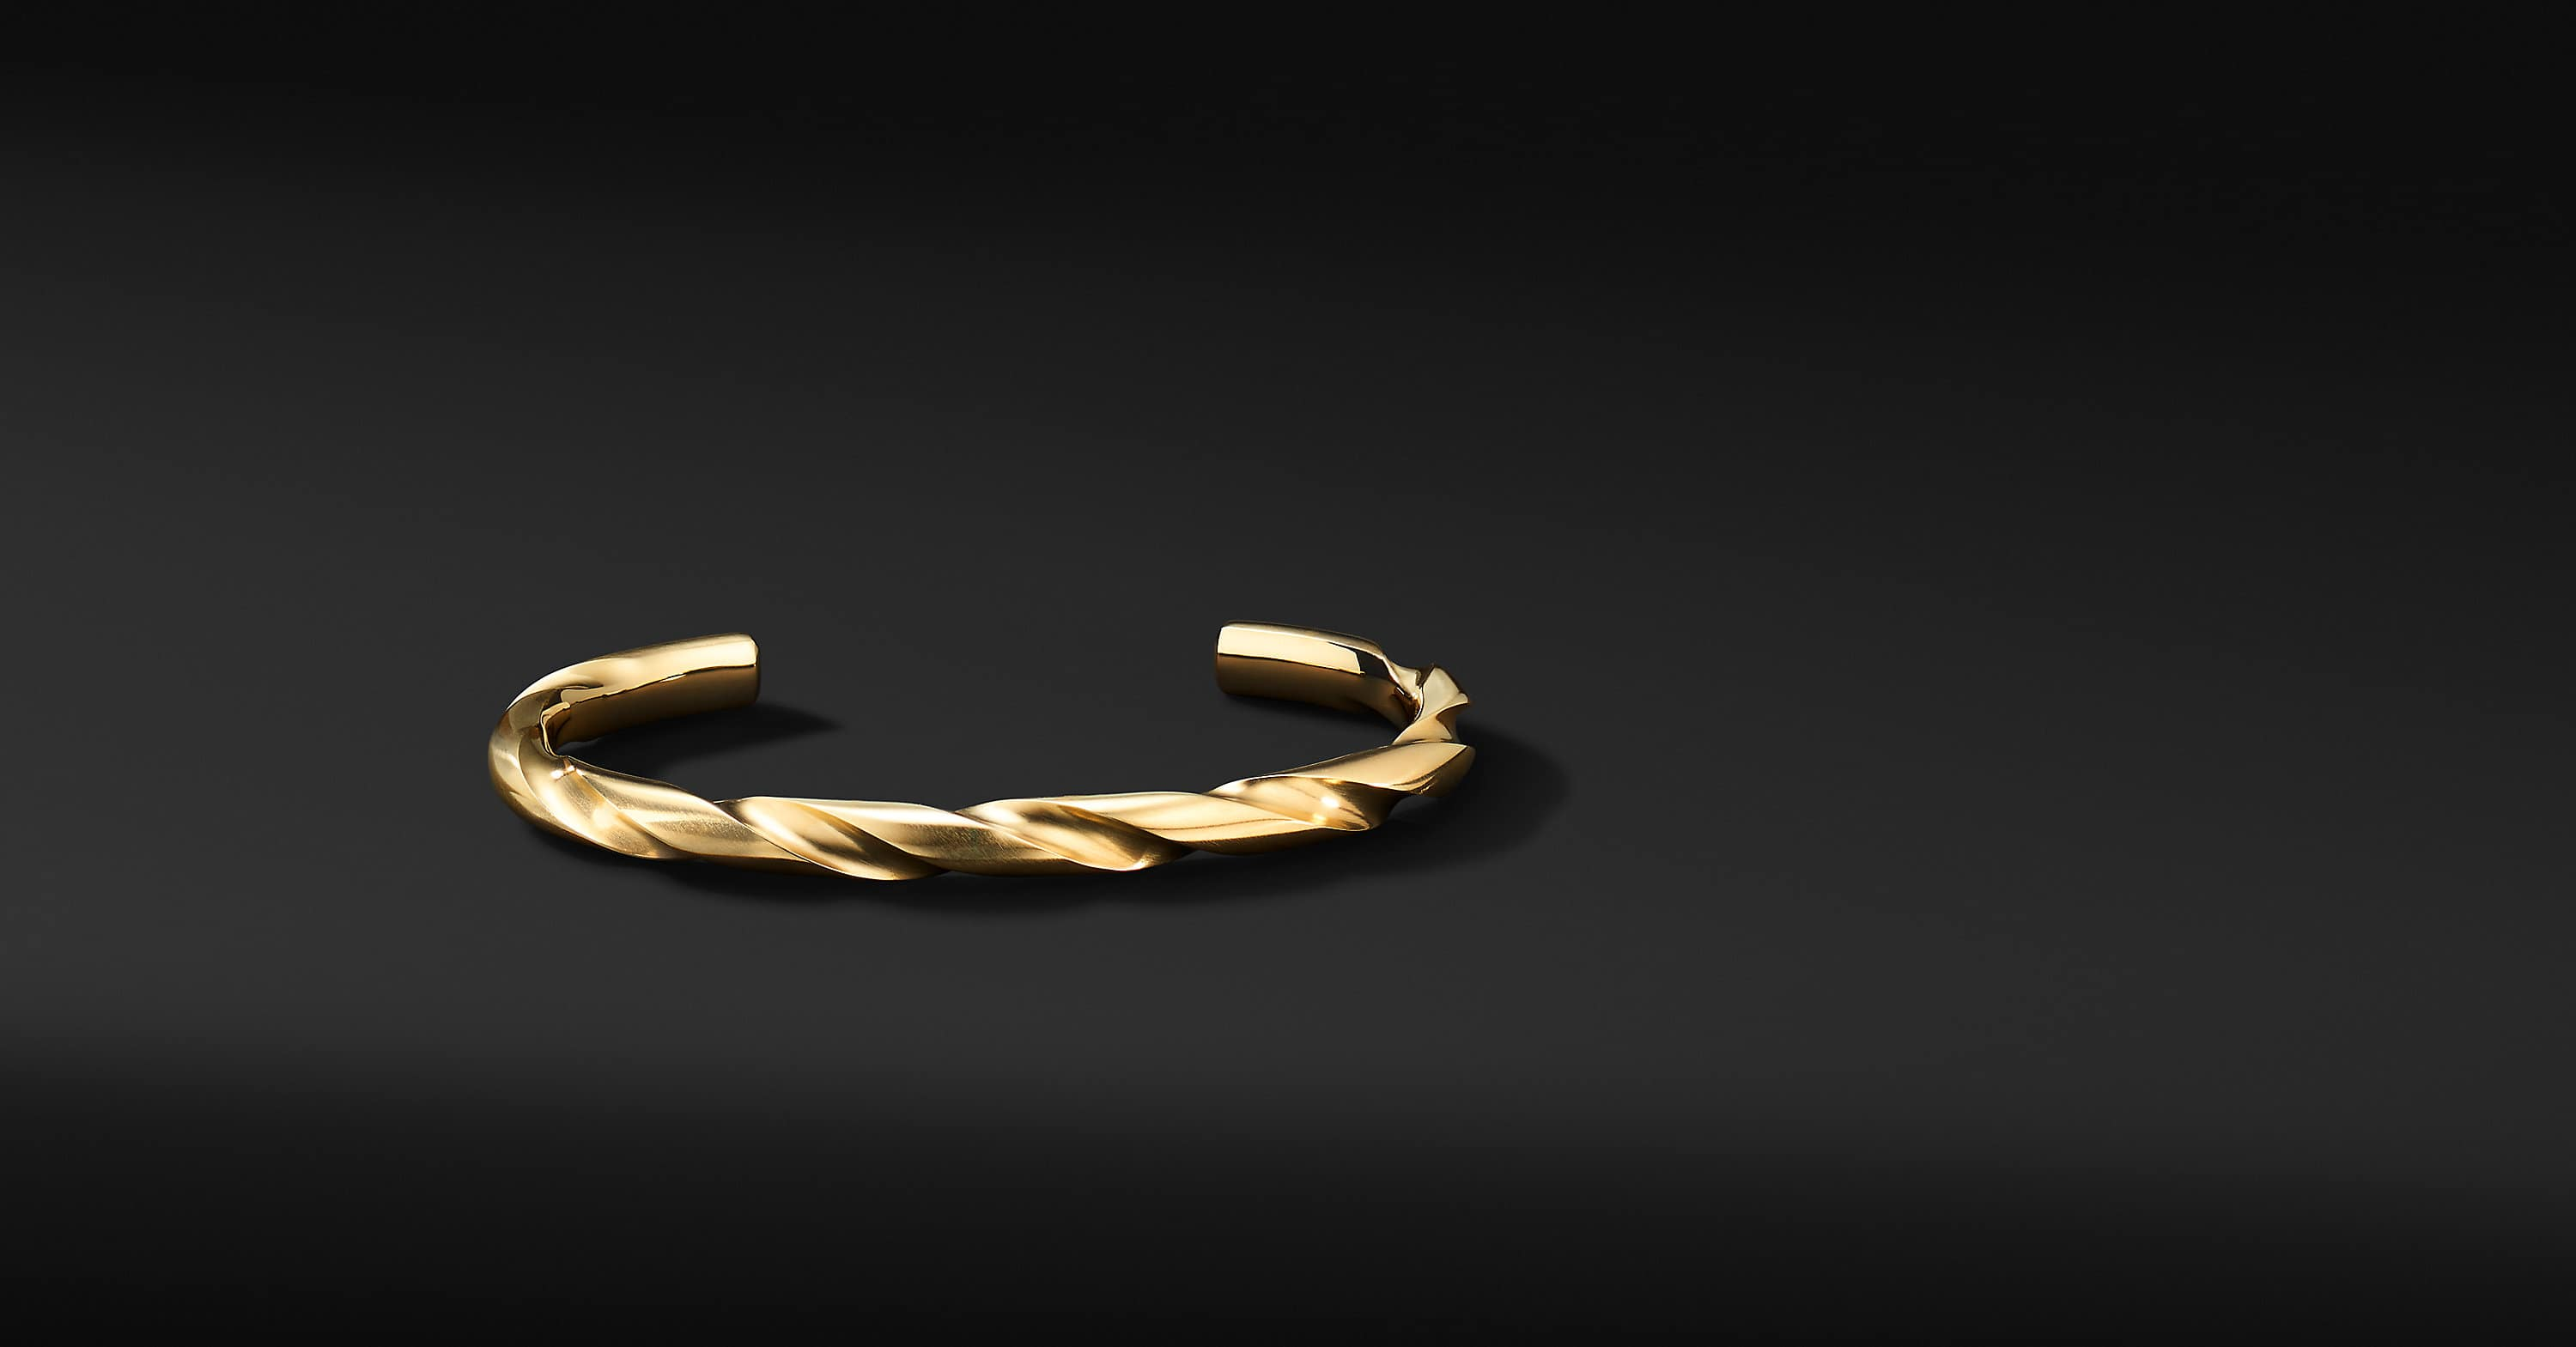 Modern Cable Cuff Bracelet in 18K Yellow Gold, 6mm